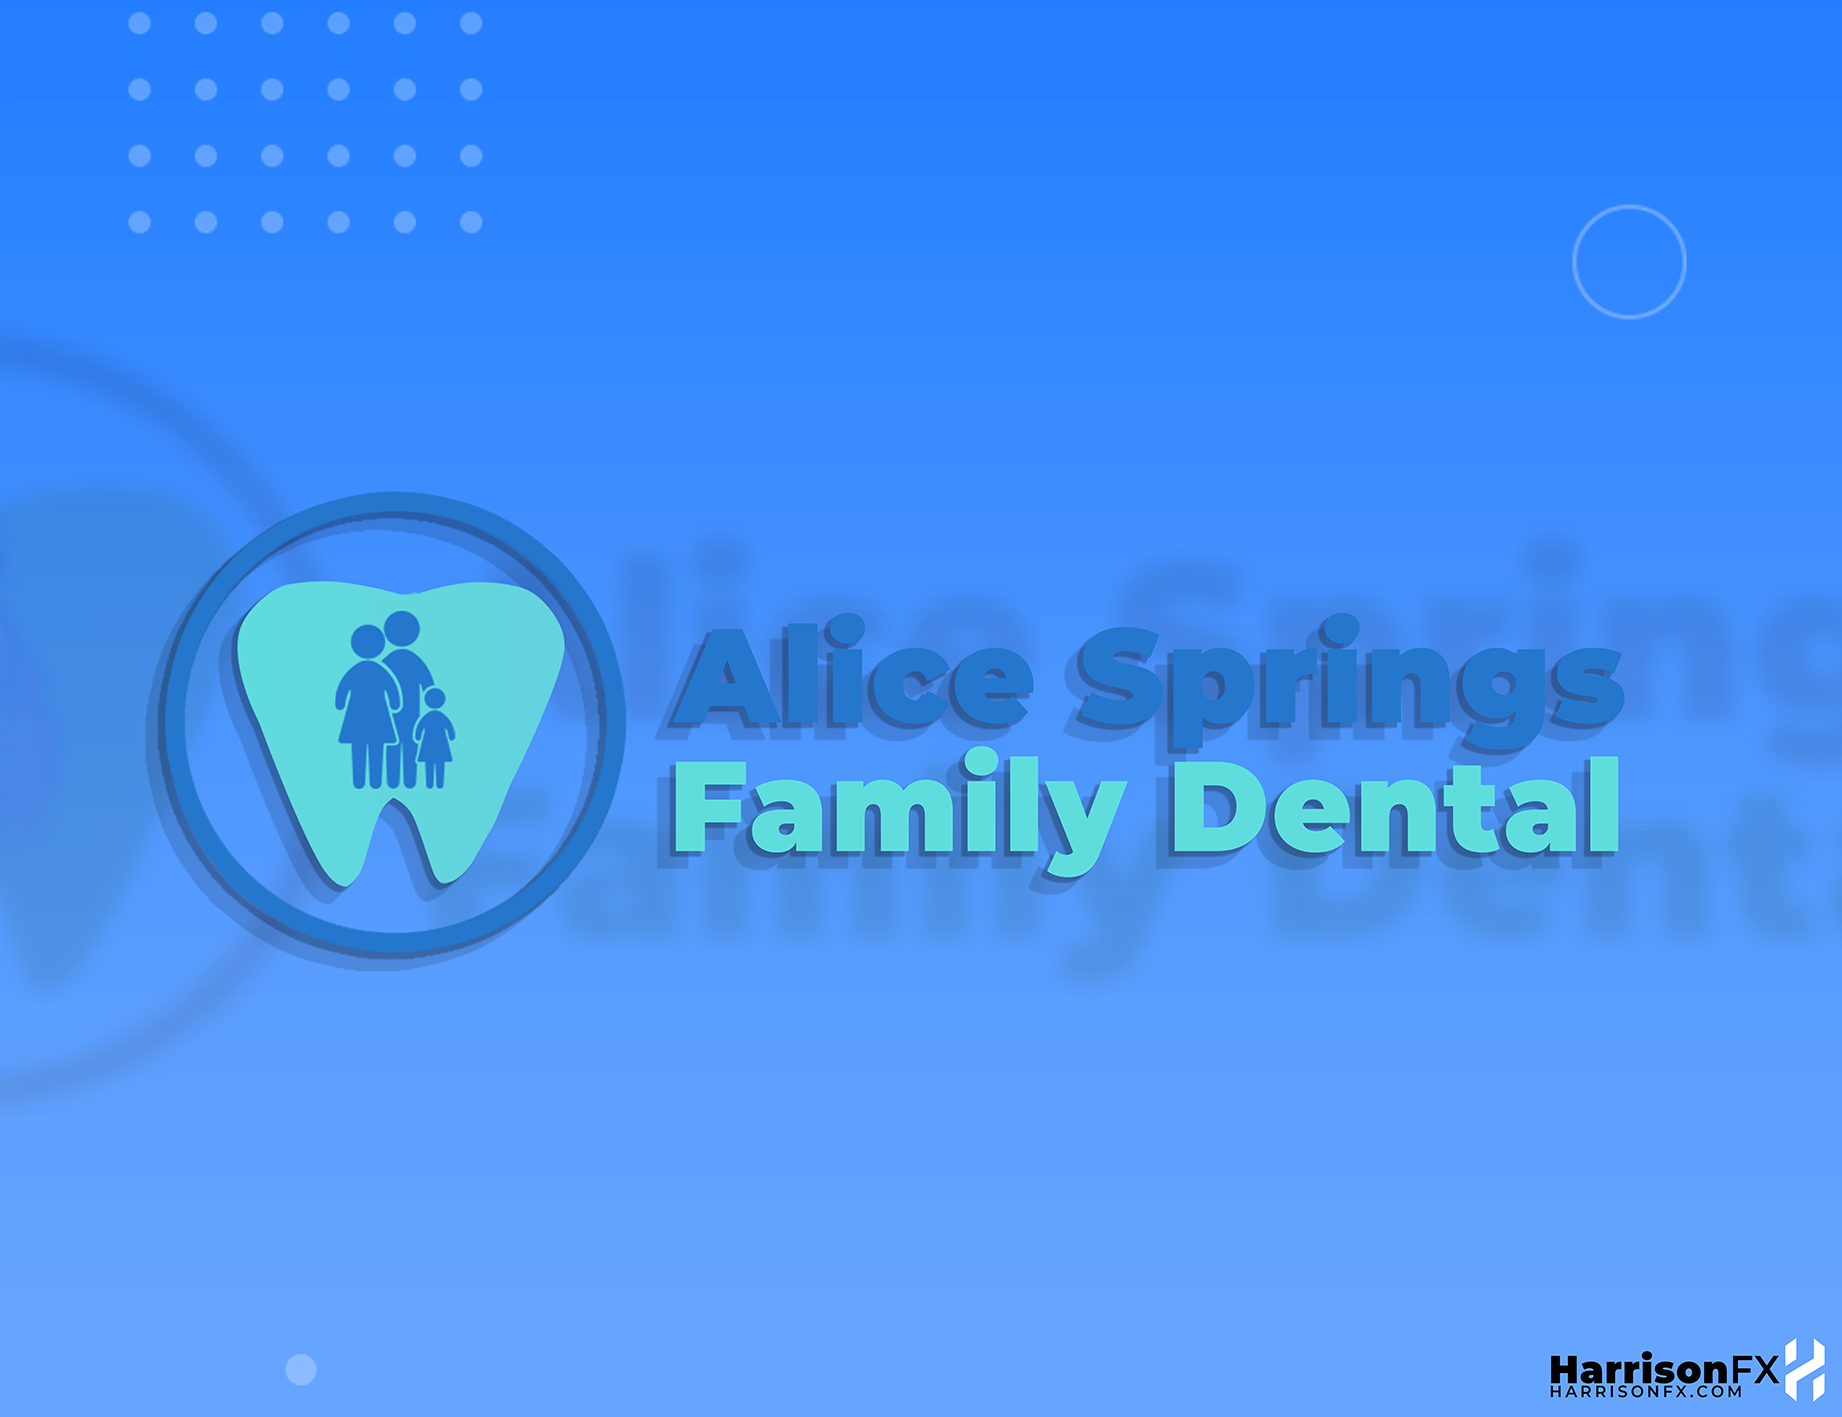 Alice Springs Family Dental